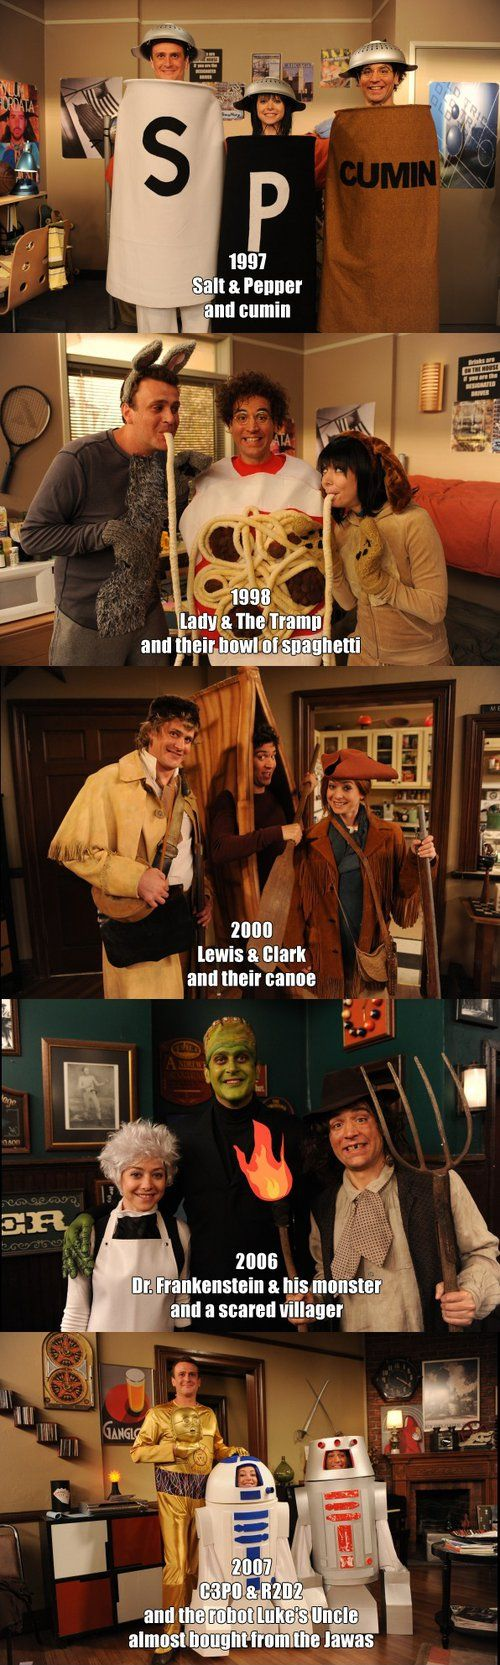 Marshall, Lily and Ted Halloween costumes - How I Met Your Mother. #thirdwheelproblems #storyofmylife ;)